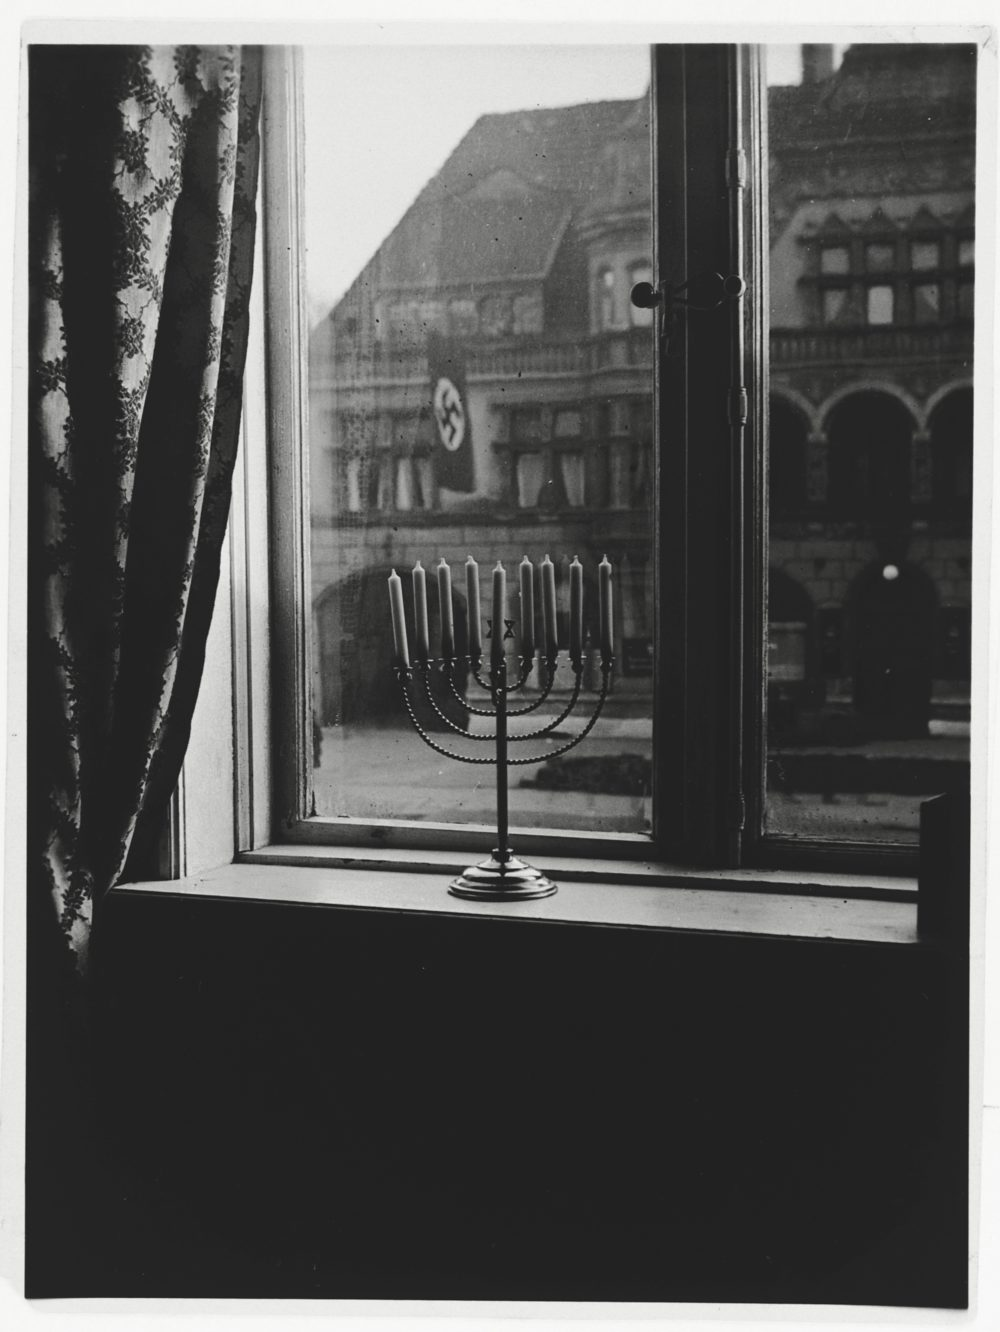 (United States Holocaust Memorial Museum, courtesy of Shulamith Posner-Mansbach).